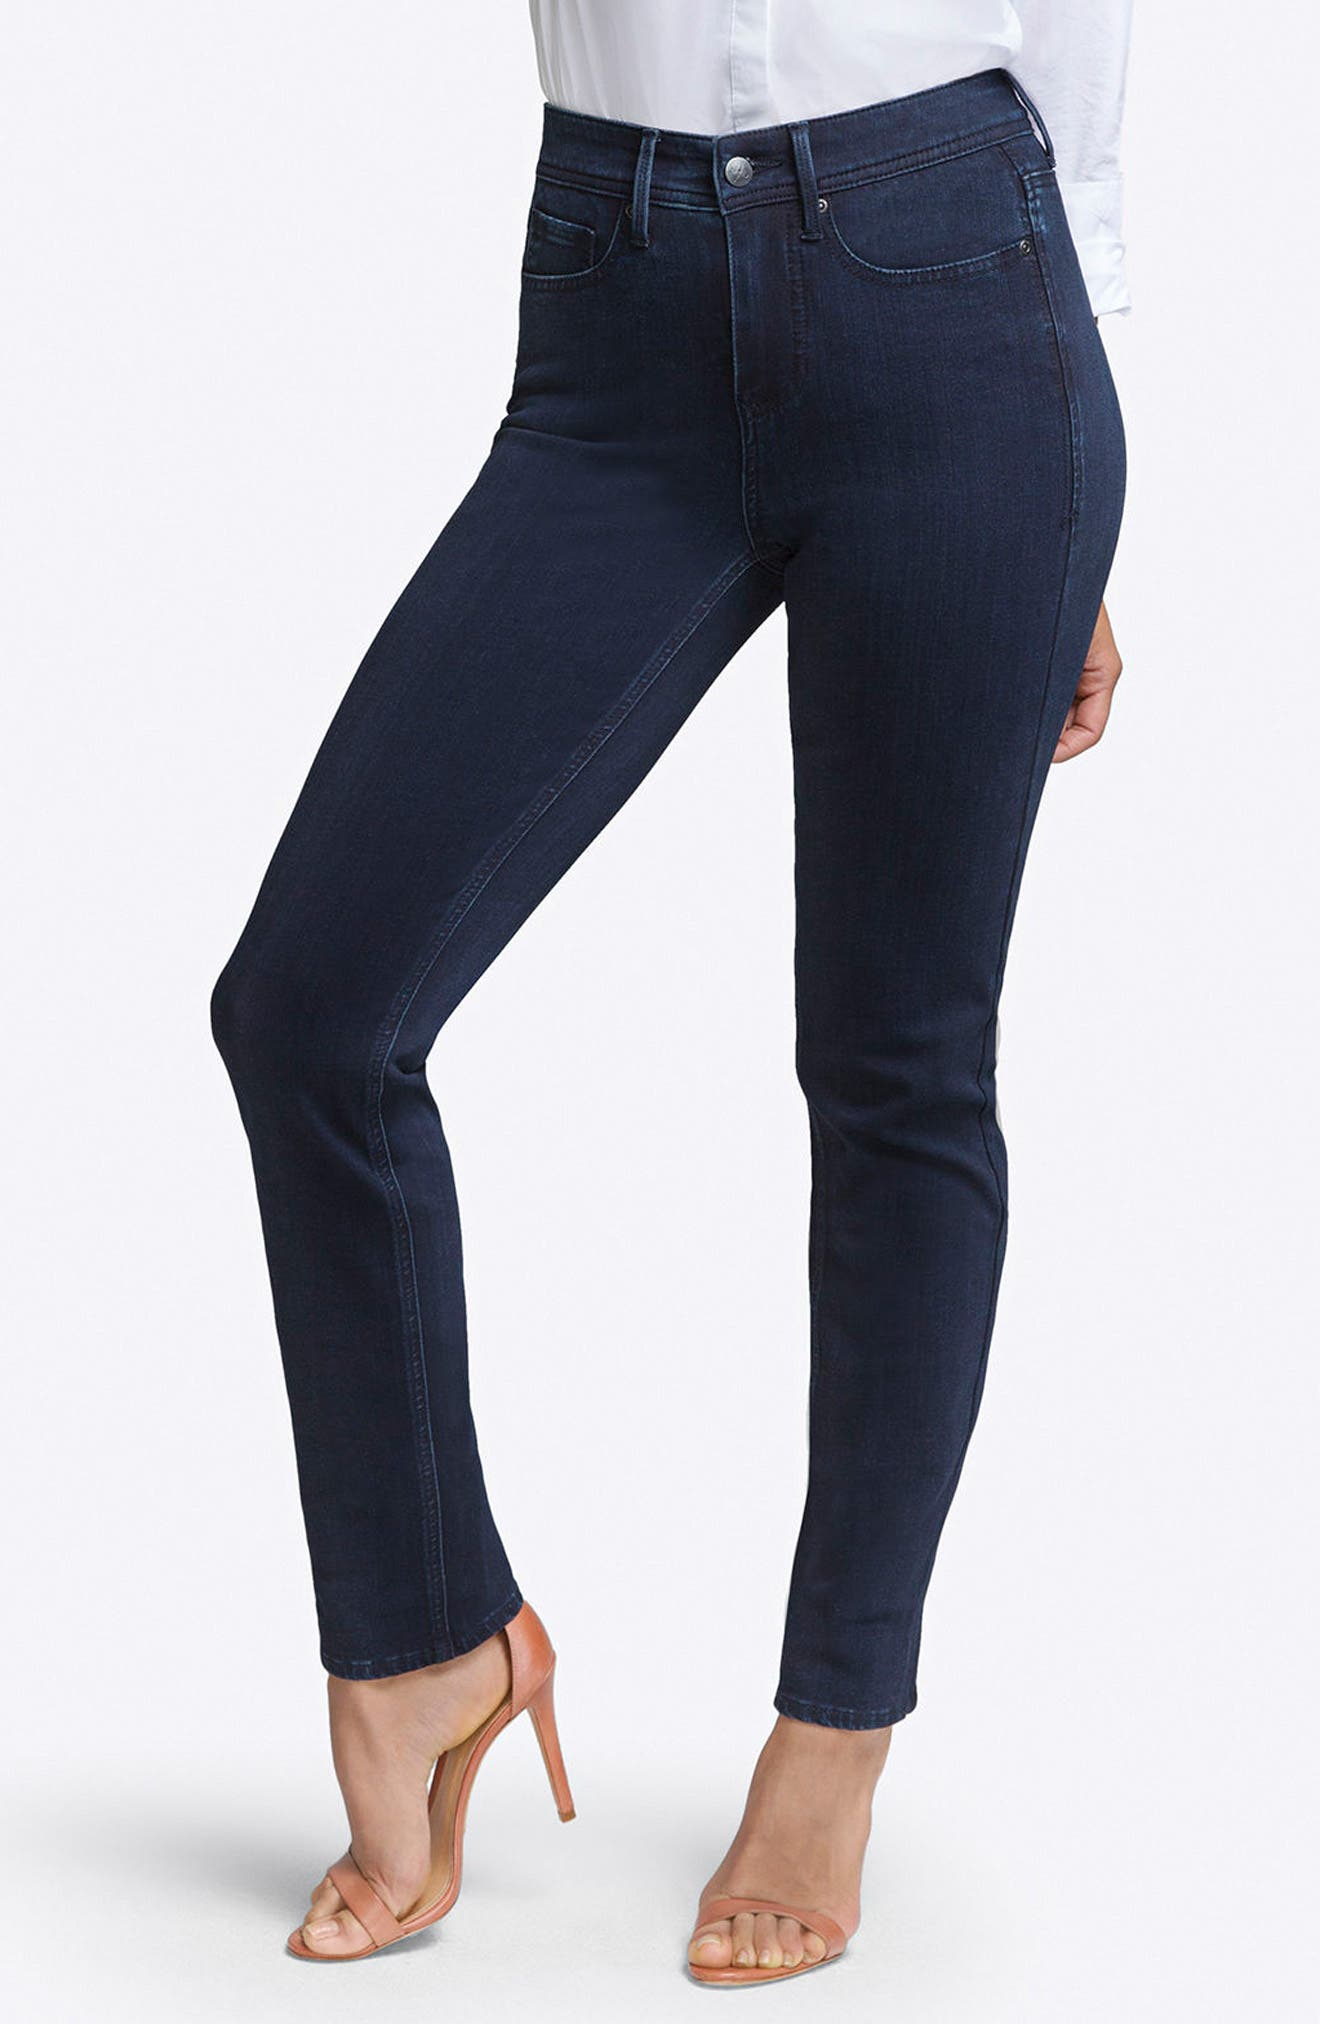 CURVES 360 BY NYDJ, Slim Straight Leg Jeans, Main thumbnail 1, color, BOWEN